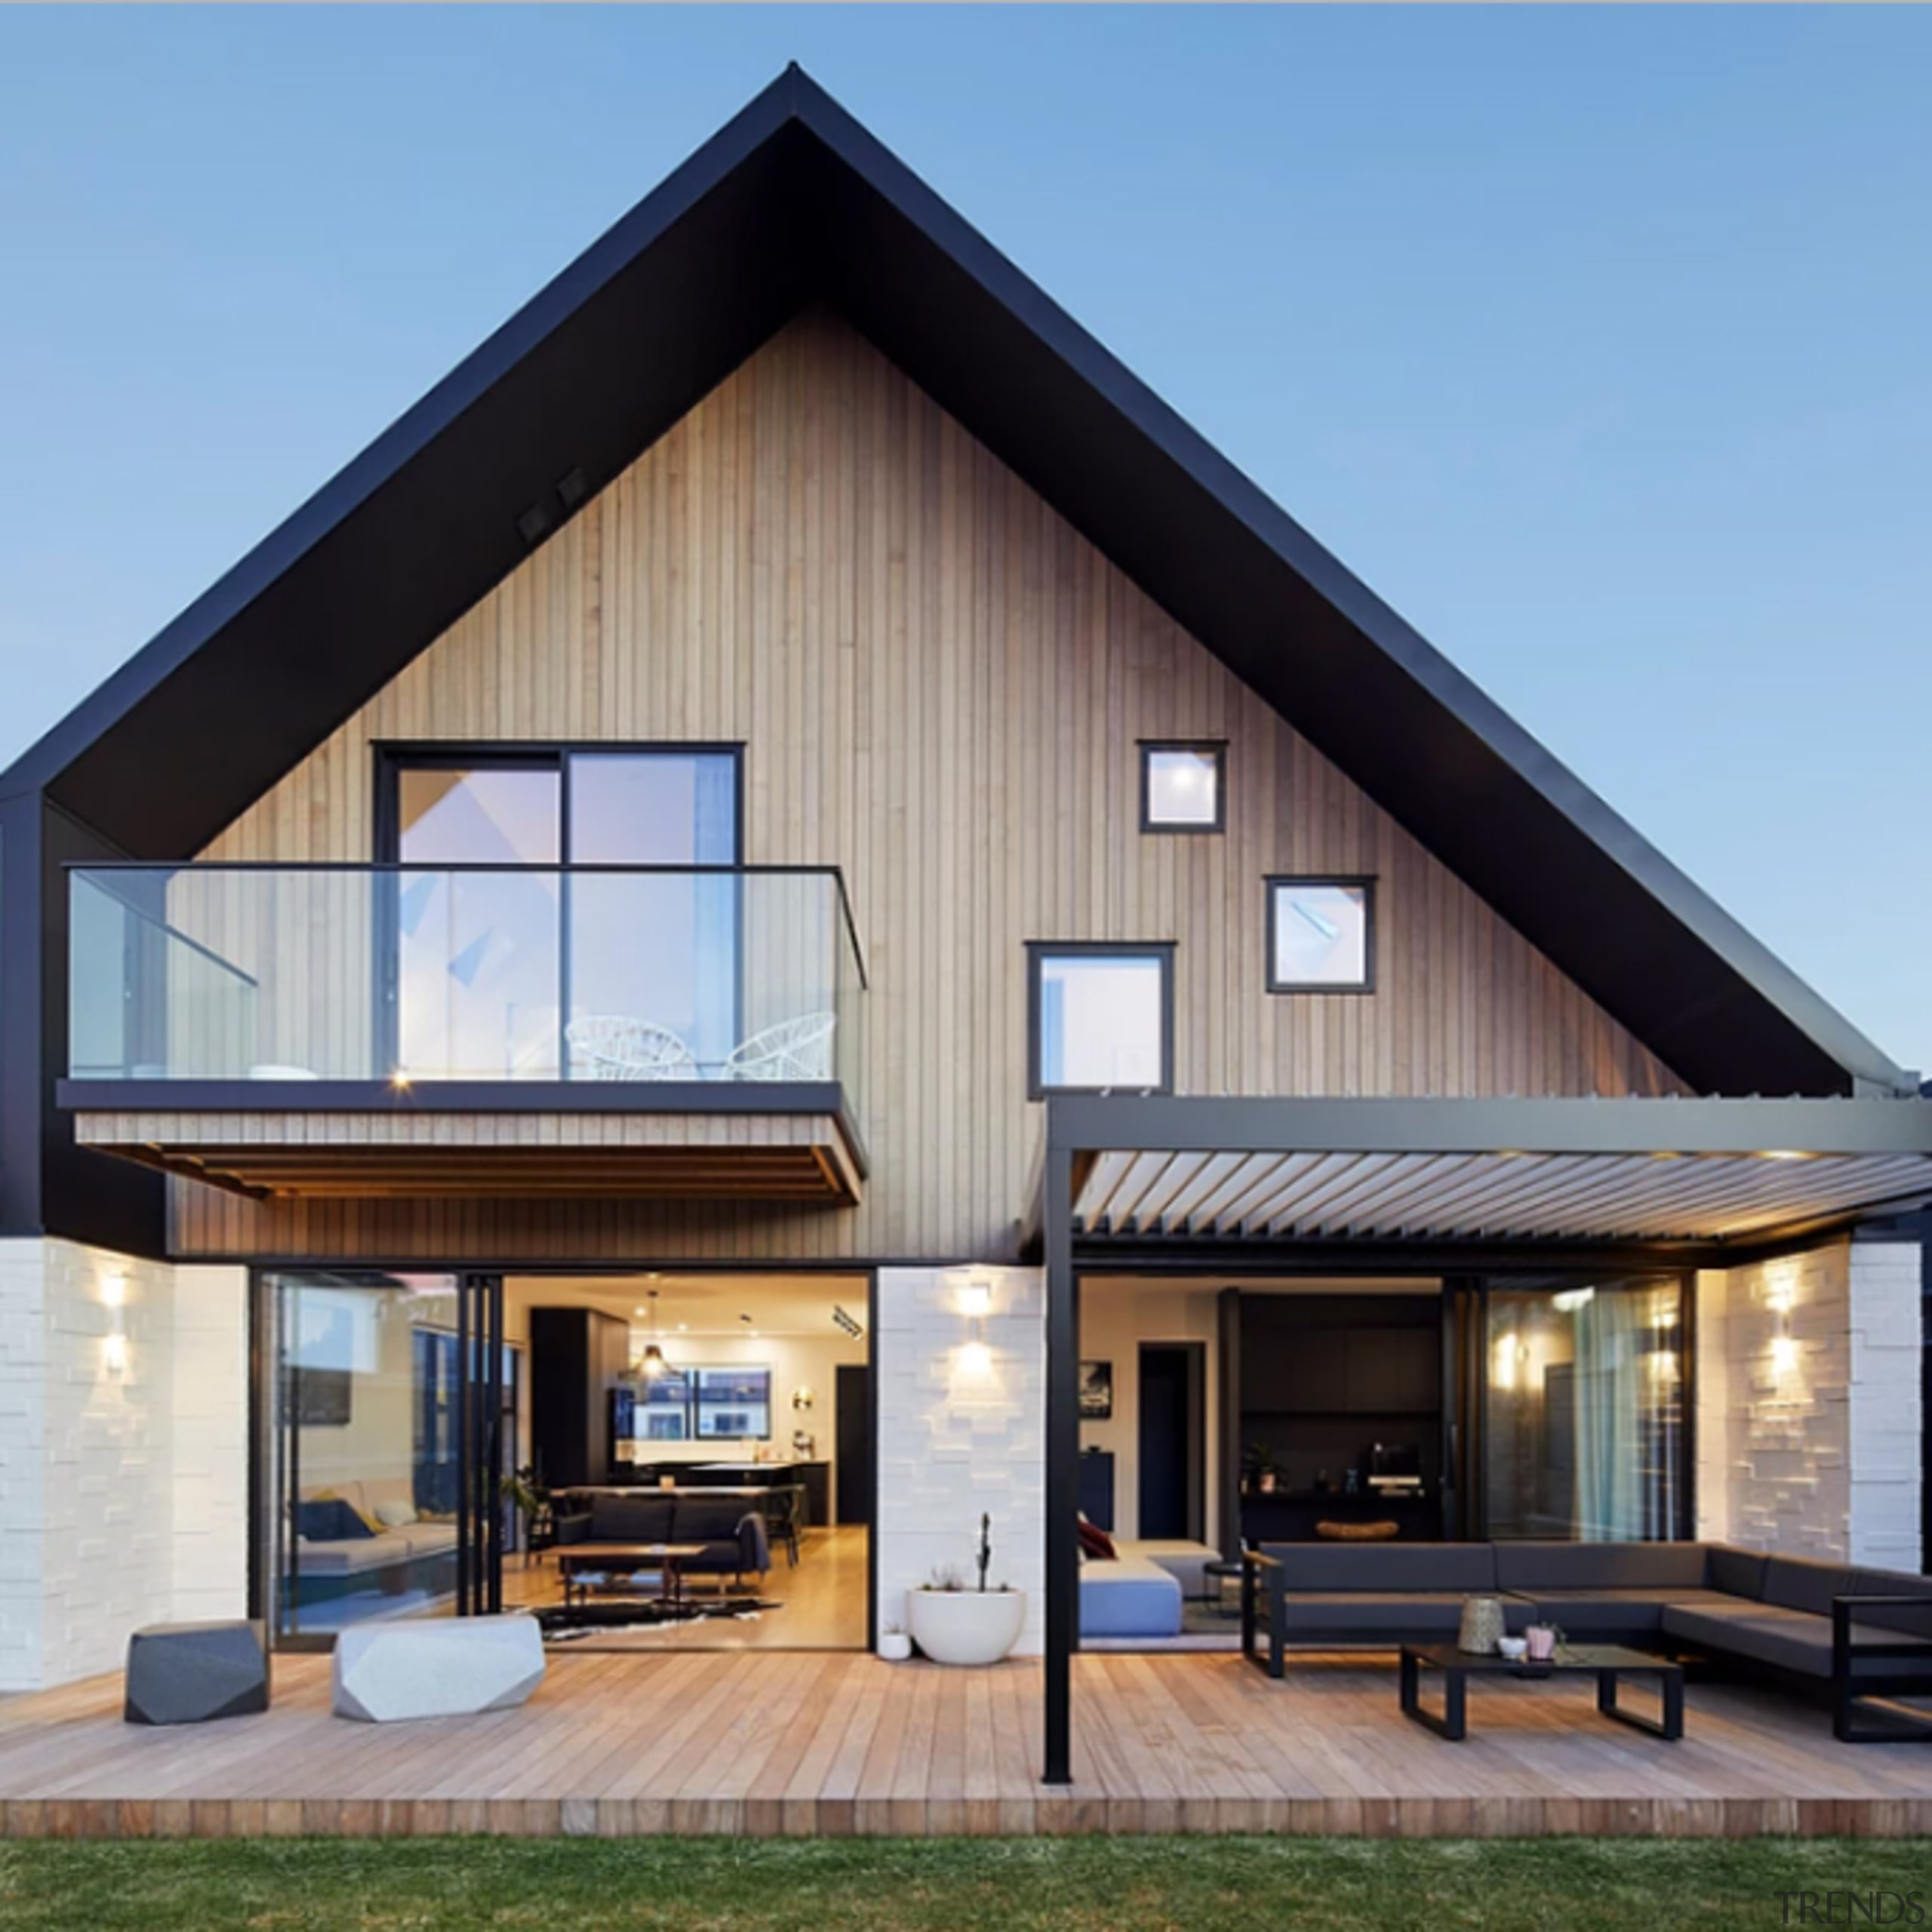 78580_louvretec-new-zealand-ltd_1557360173 - architecture   building   cottage   architecture, building, cottage, design, facade, home, house, interior design, property, real estate, residential area, roof, room, siding, sky, window, wood, gray, teal